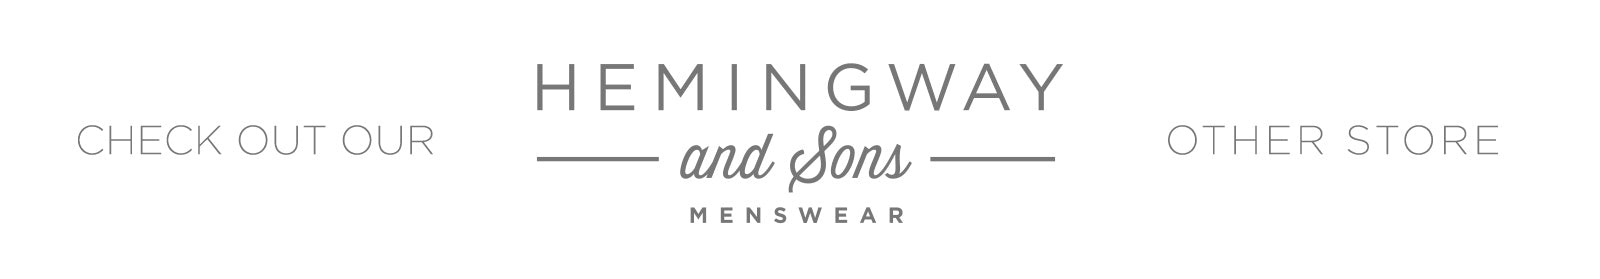 Check out our other store: Hemingway and Sons - Menswear